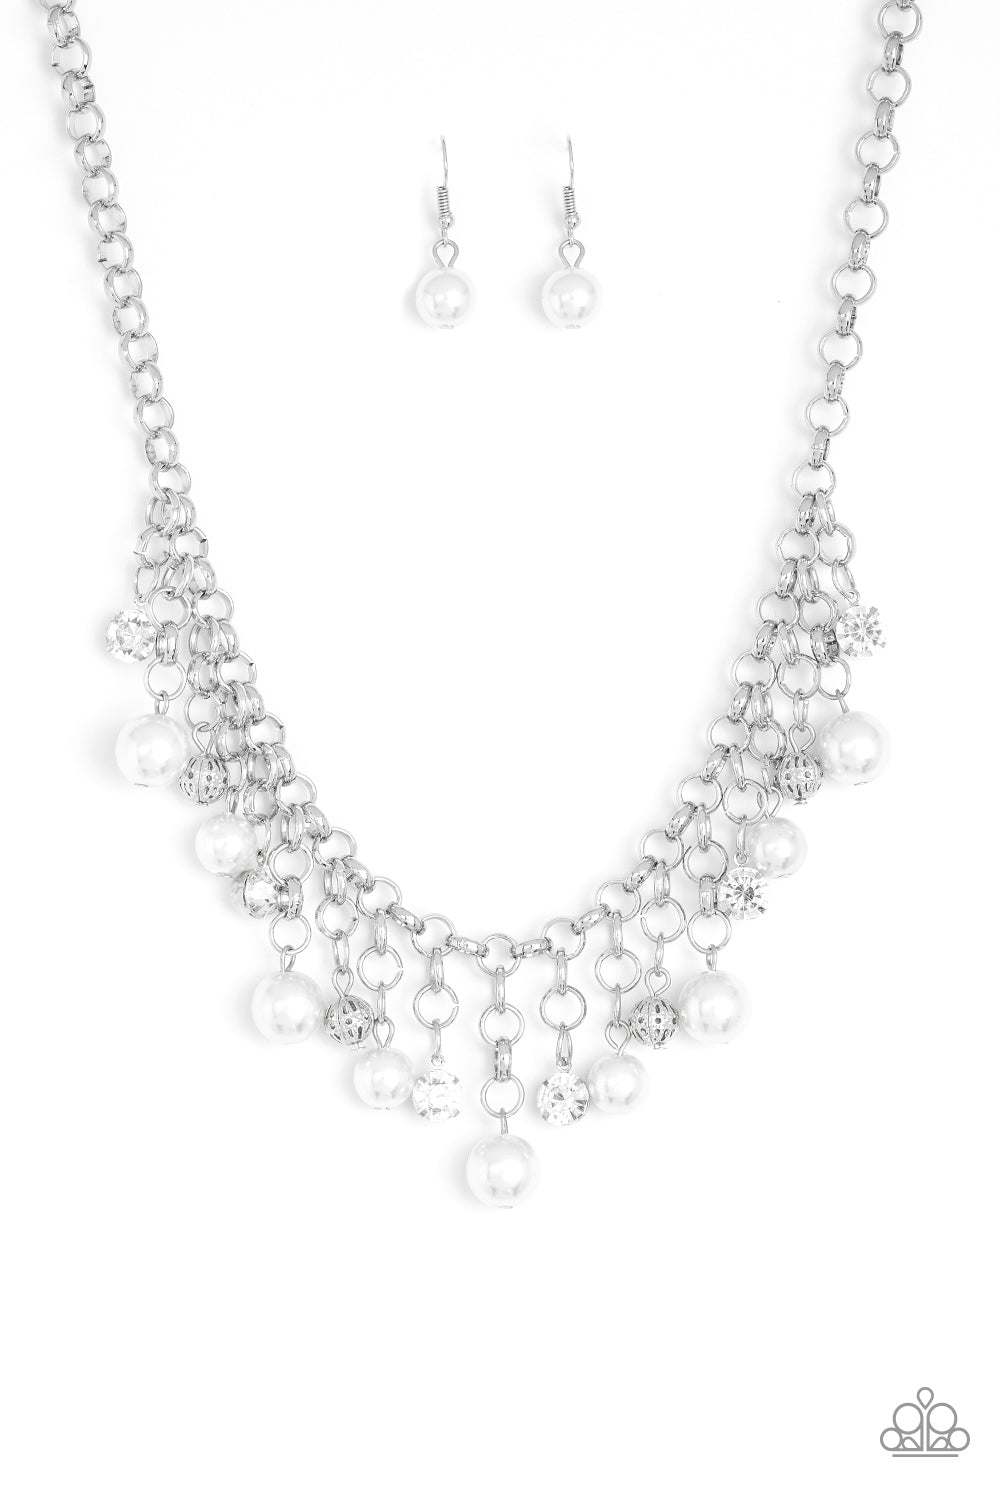 Paparazzi Accessories - HEIR-headed - White Necklace Set - JMJ Jewelry Collection